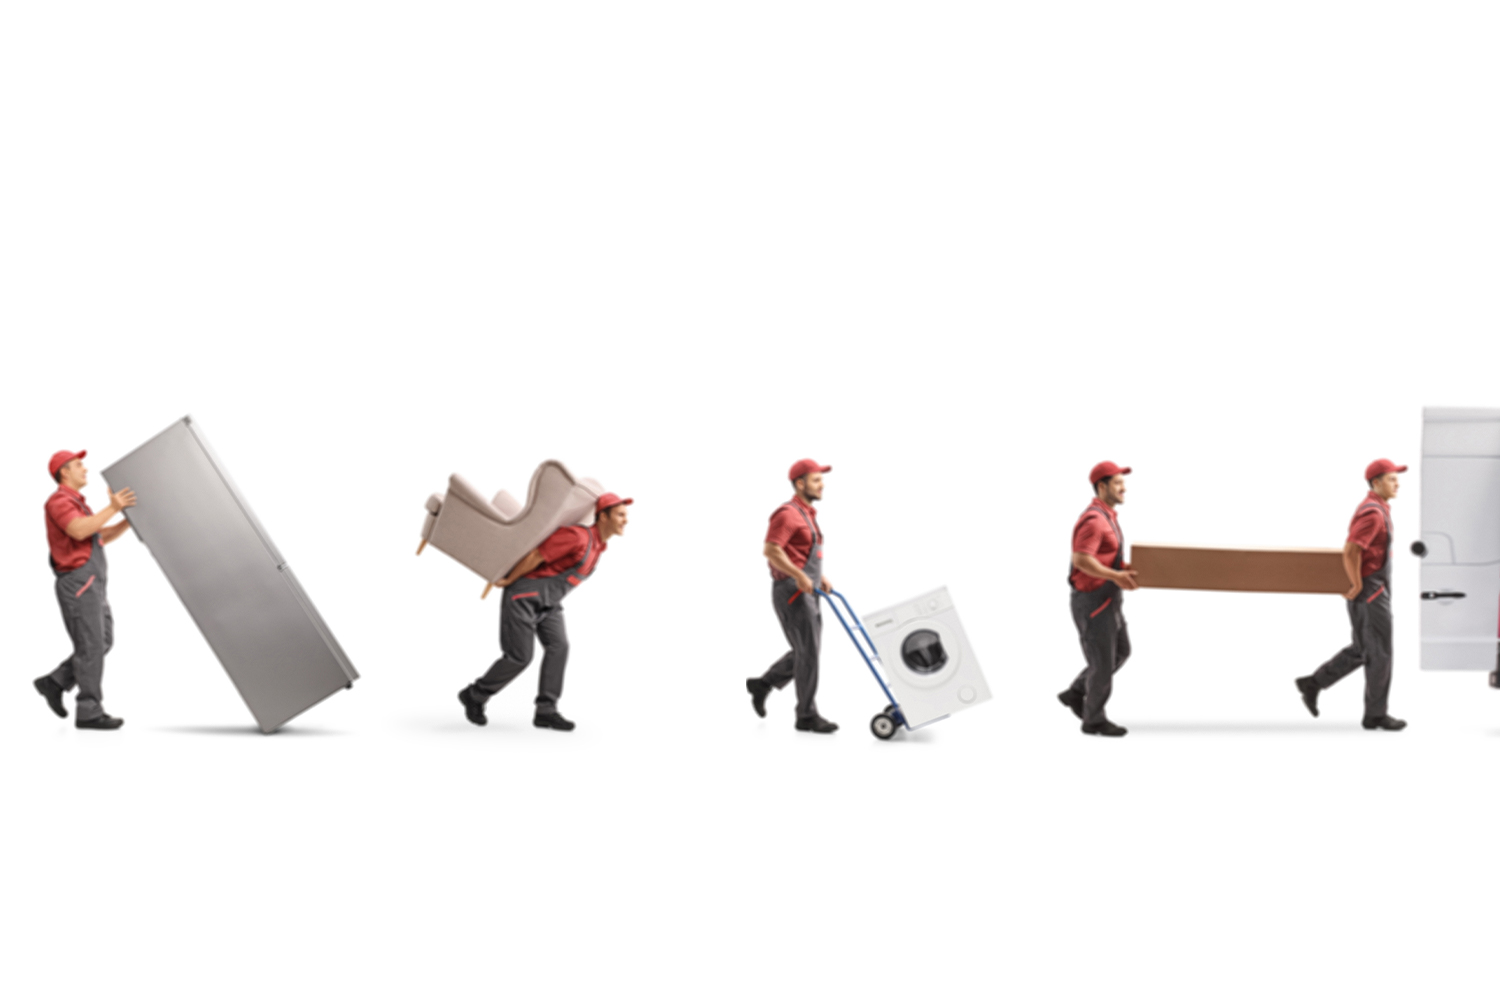 Movers carrying bulky items